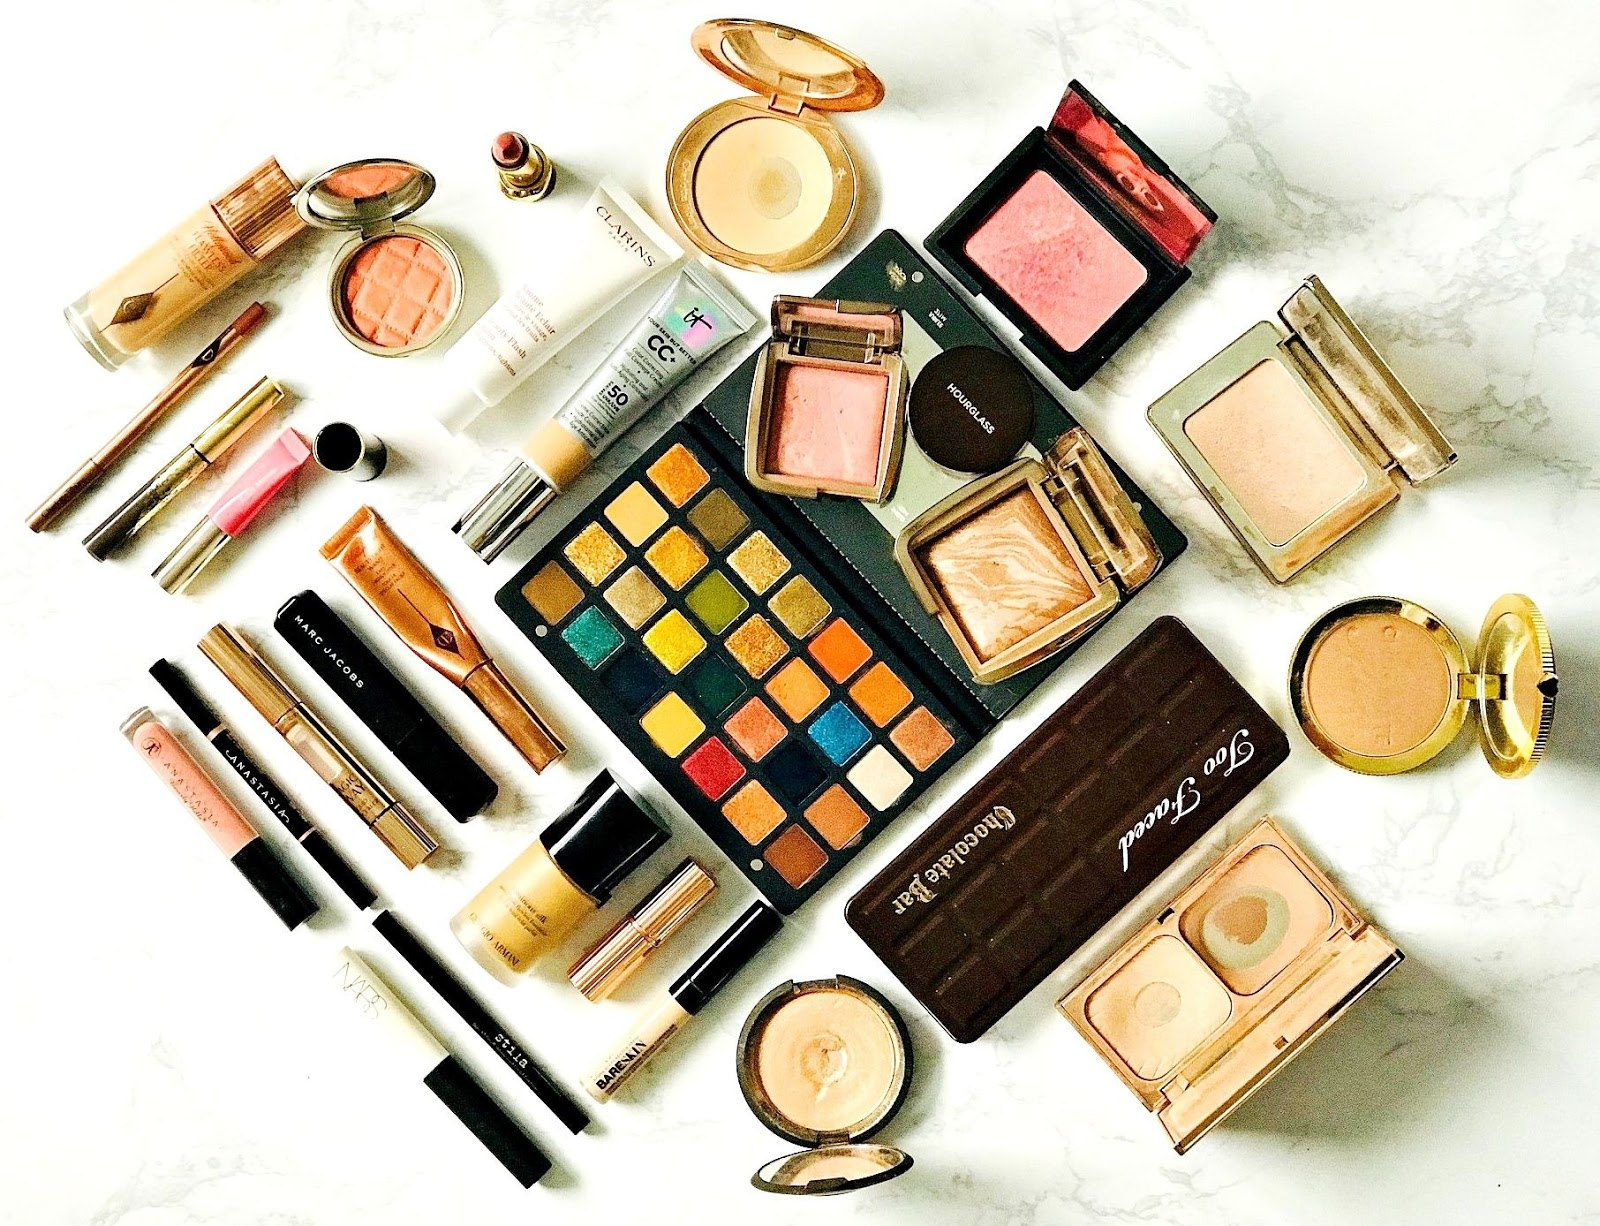 My HG makeup products plus 20% discount